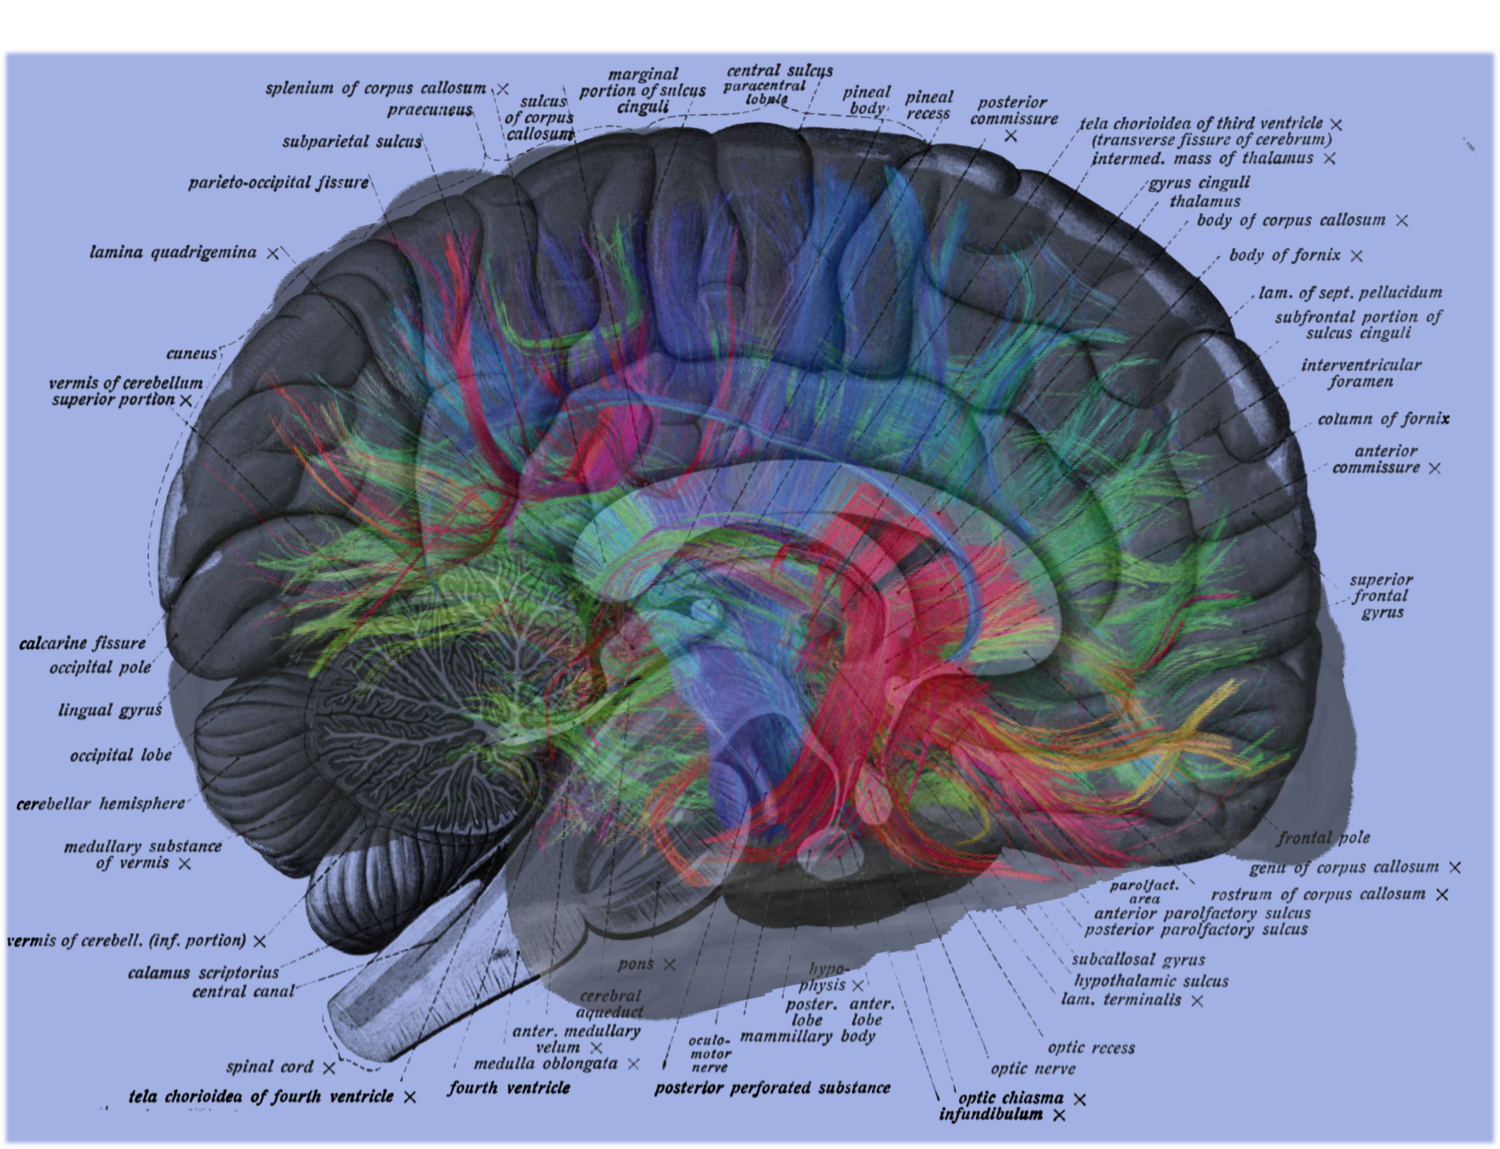 MRI Neural Brain Map Overlay on Human Brain Label Diagram | Jacob Irwin